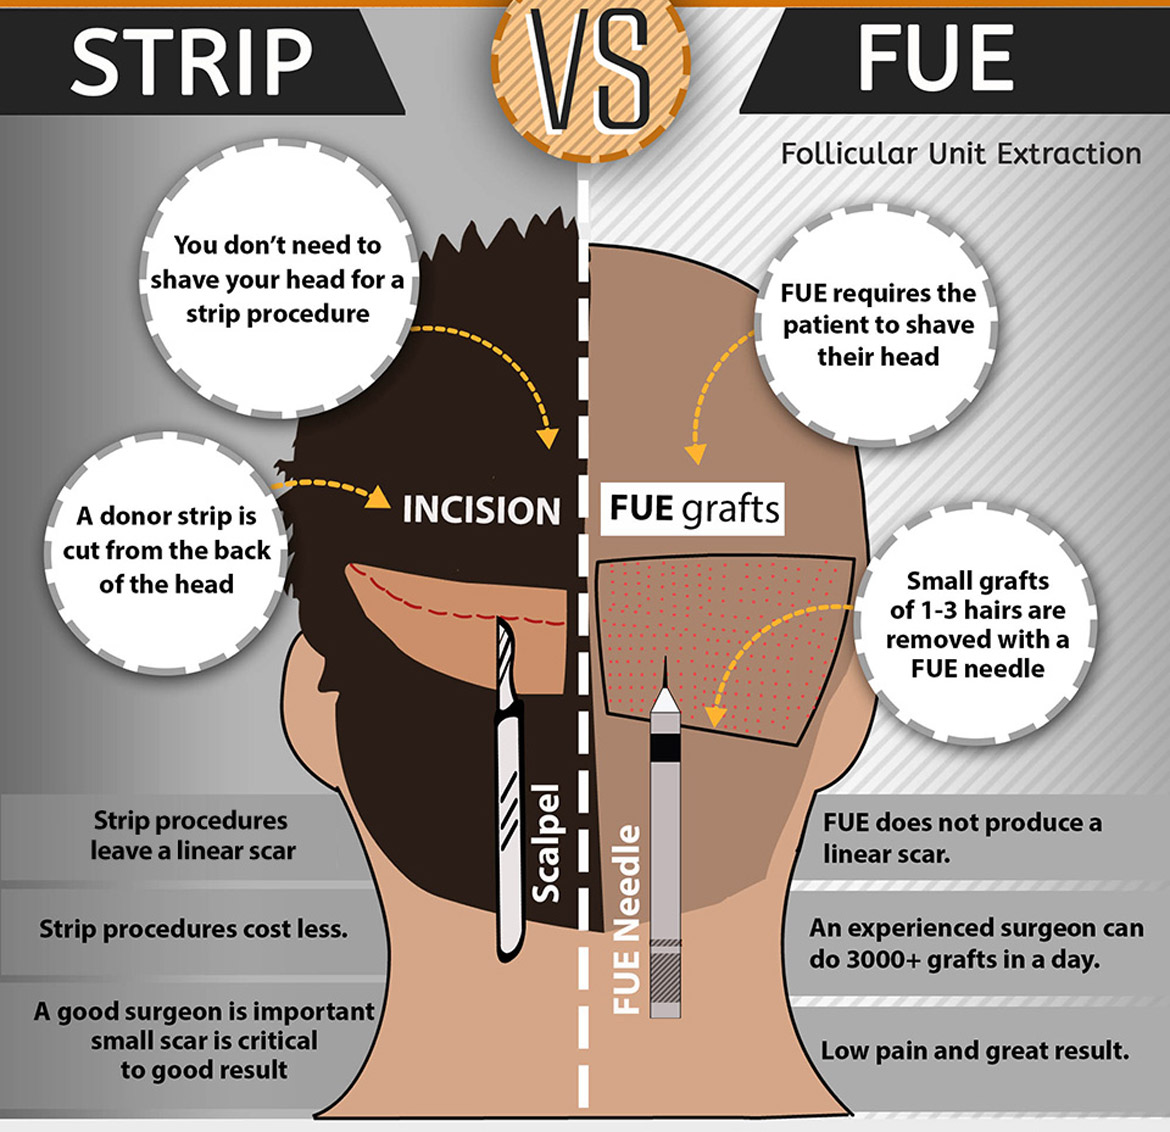 2014-8-21-960square-strip-fue-tall-fue-vs-strip-infographic